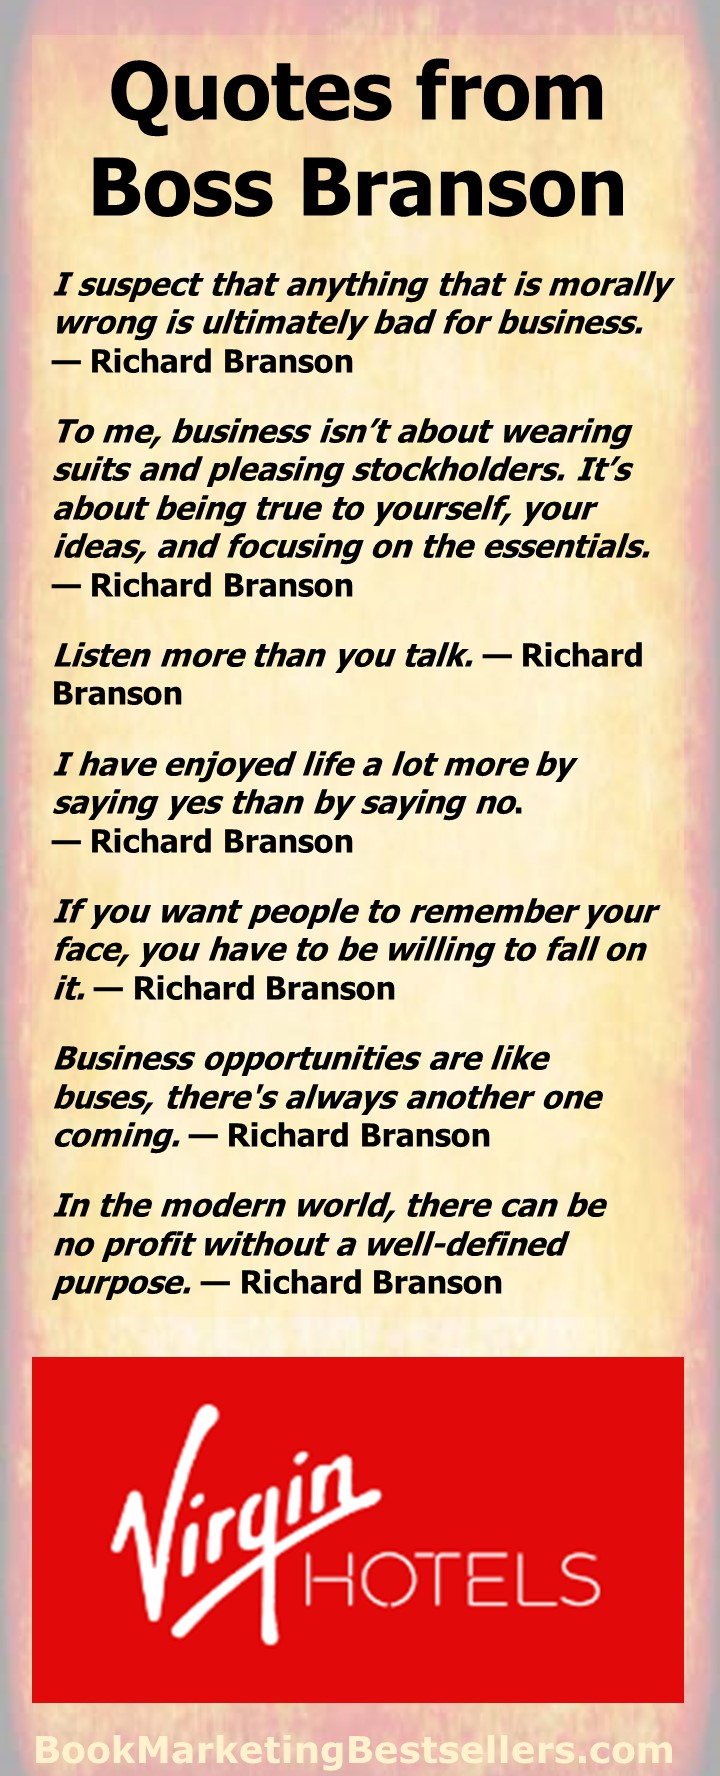 Business Quotes from Richard Branson - business quotations from Richard Branson, billionaire founder of the Virgin Group. You can learn a lot from these simple business observations.